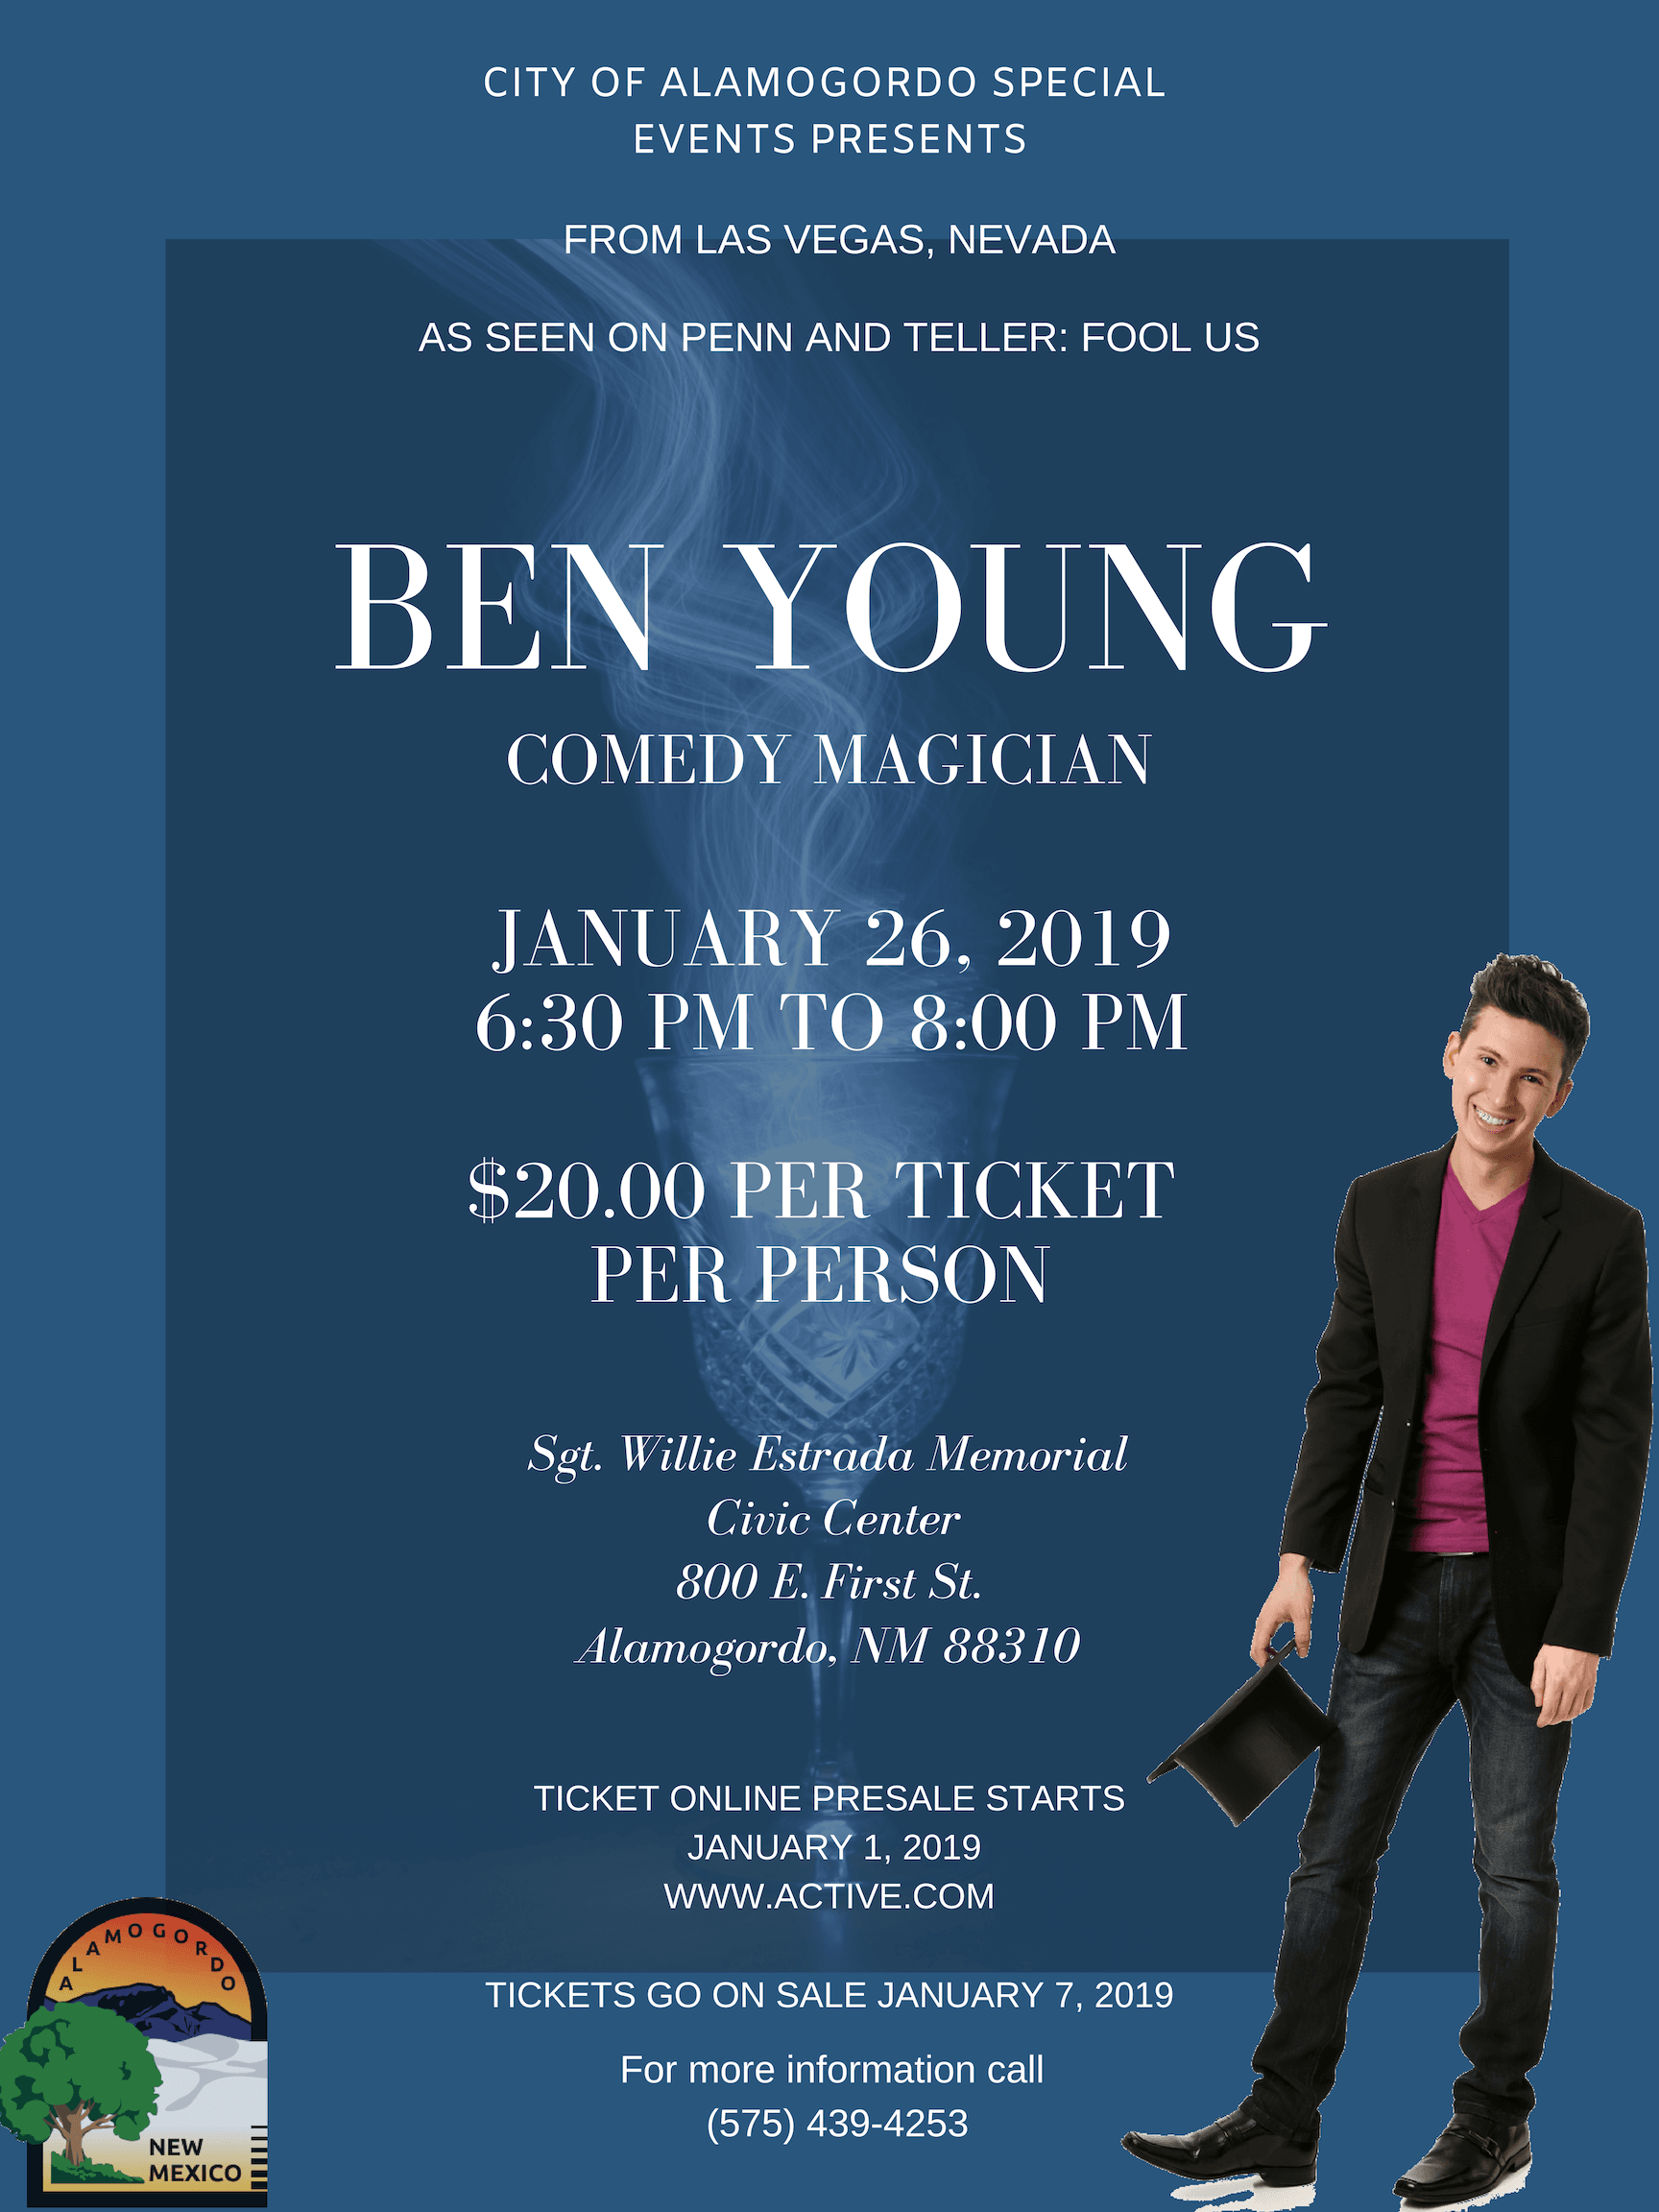 Advertisement for Ben Young, comedy magician show on January 26.